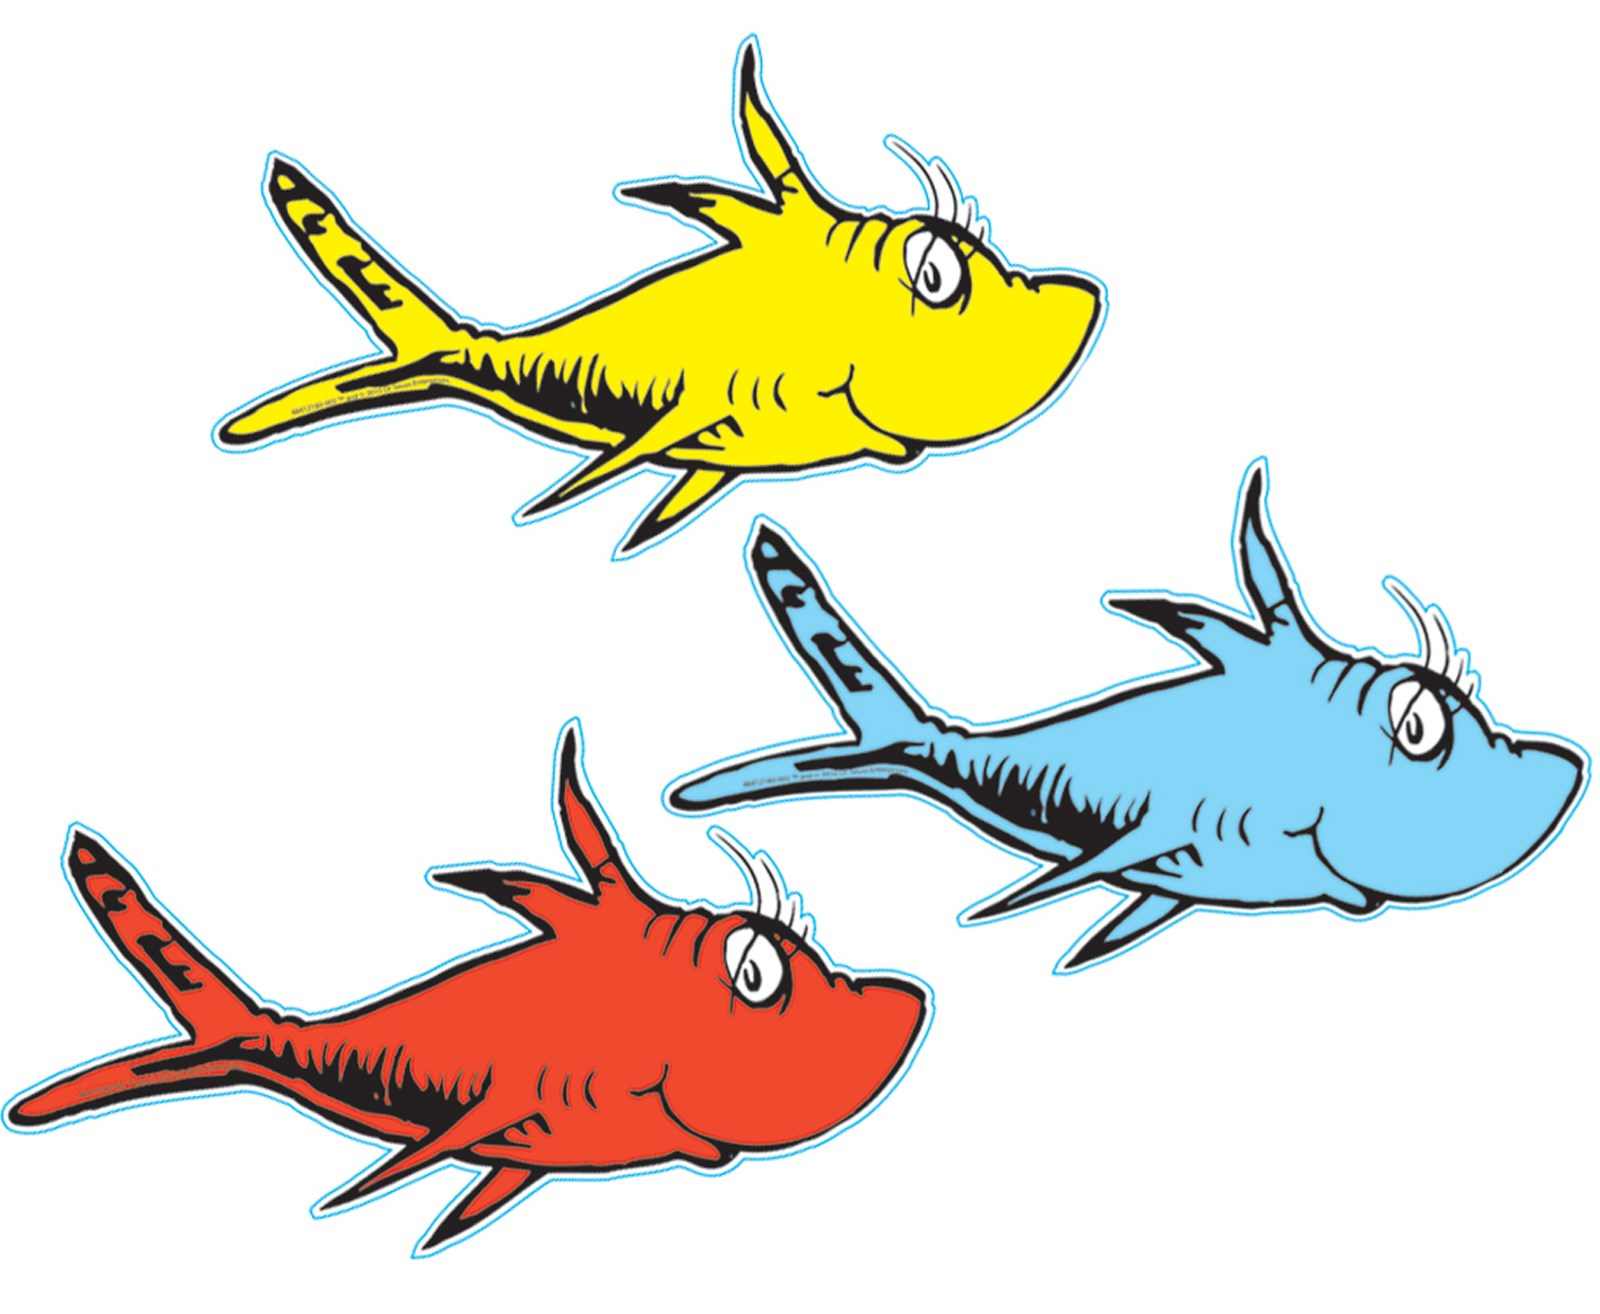 Dr seuss 1 fish 2 fish cutouts for Dr seuss one fish two fish